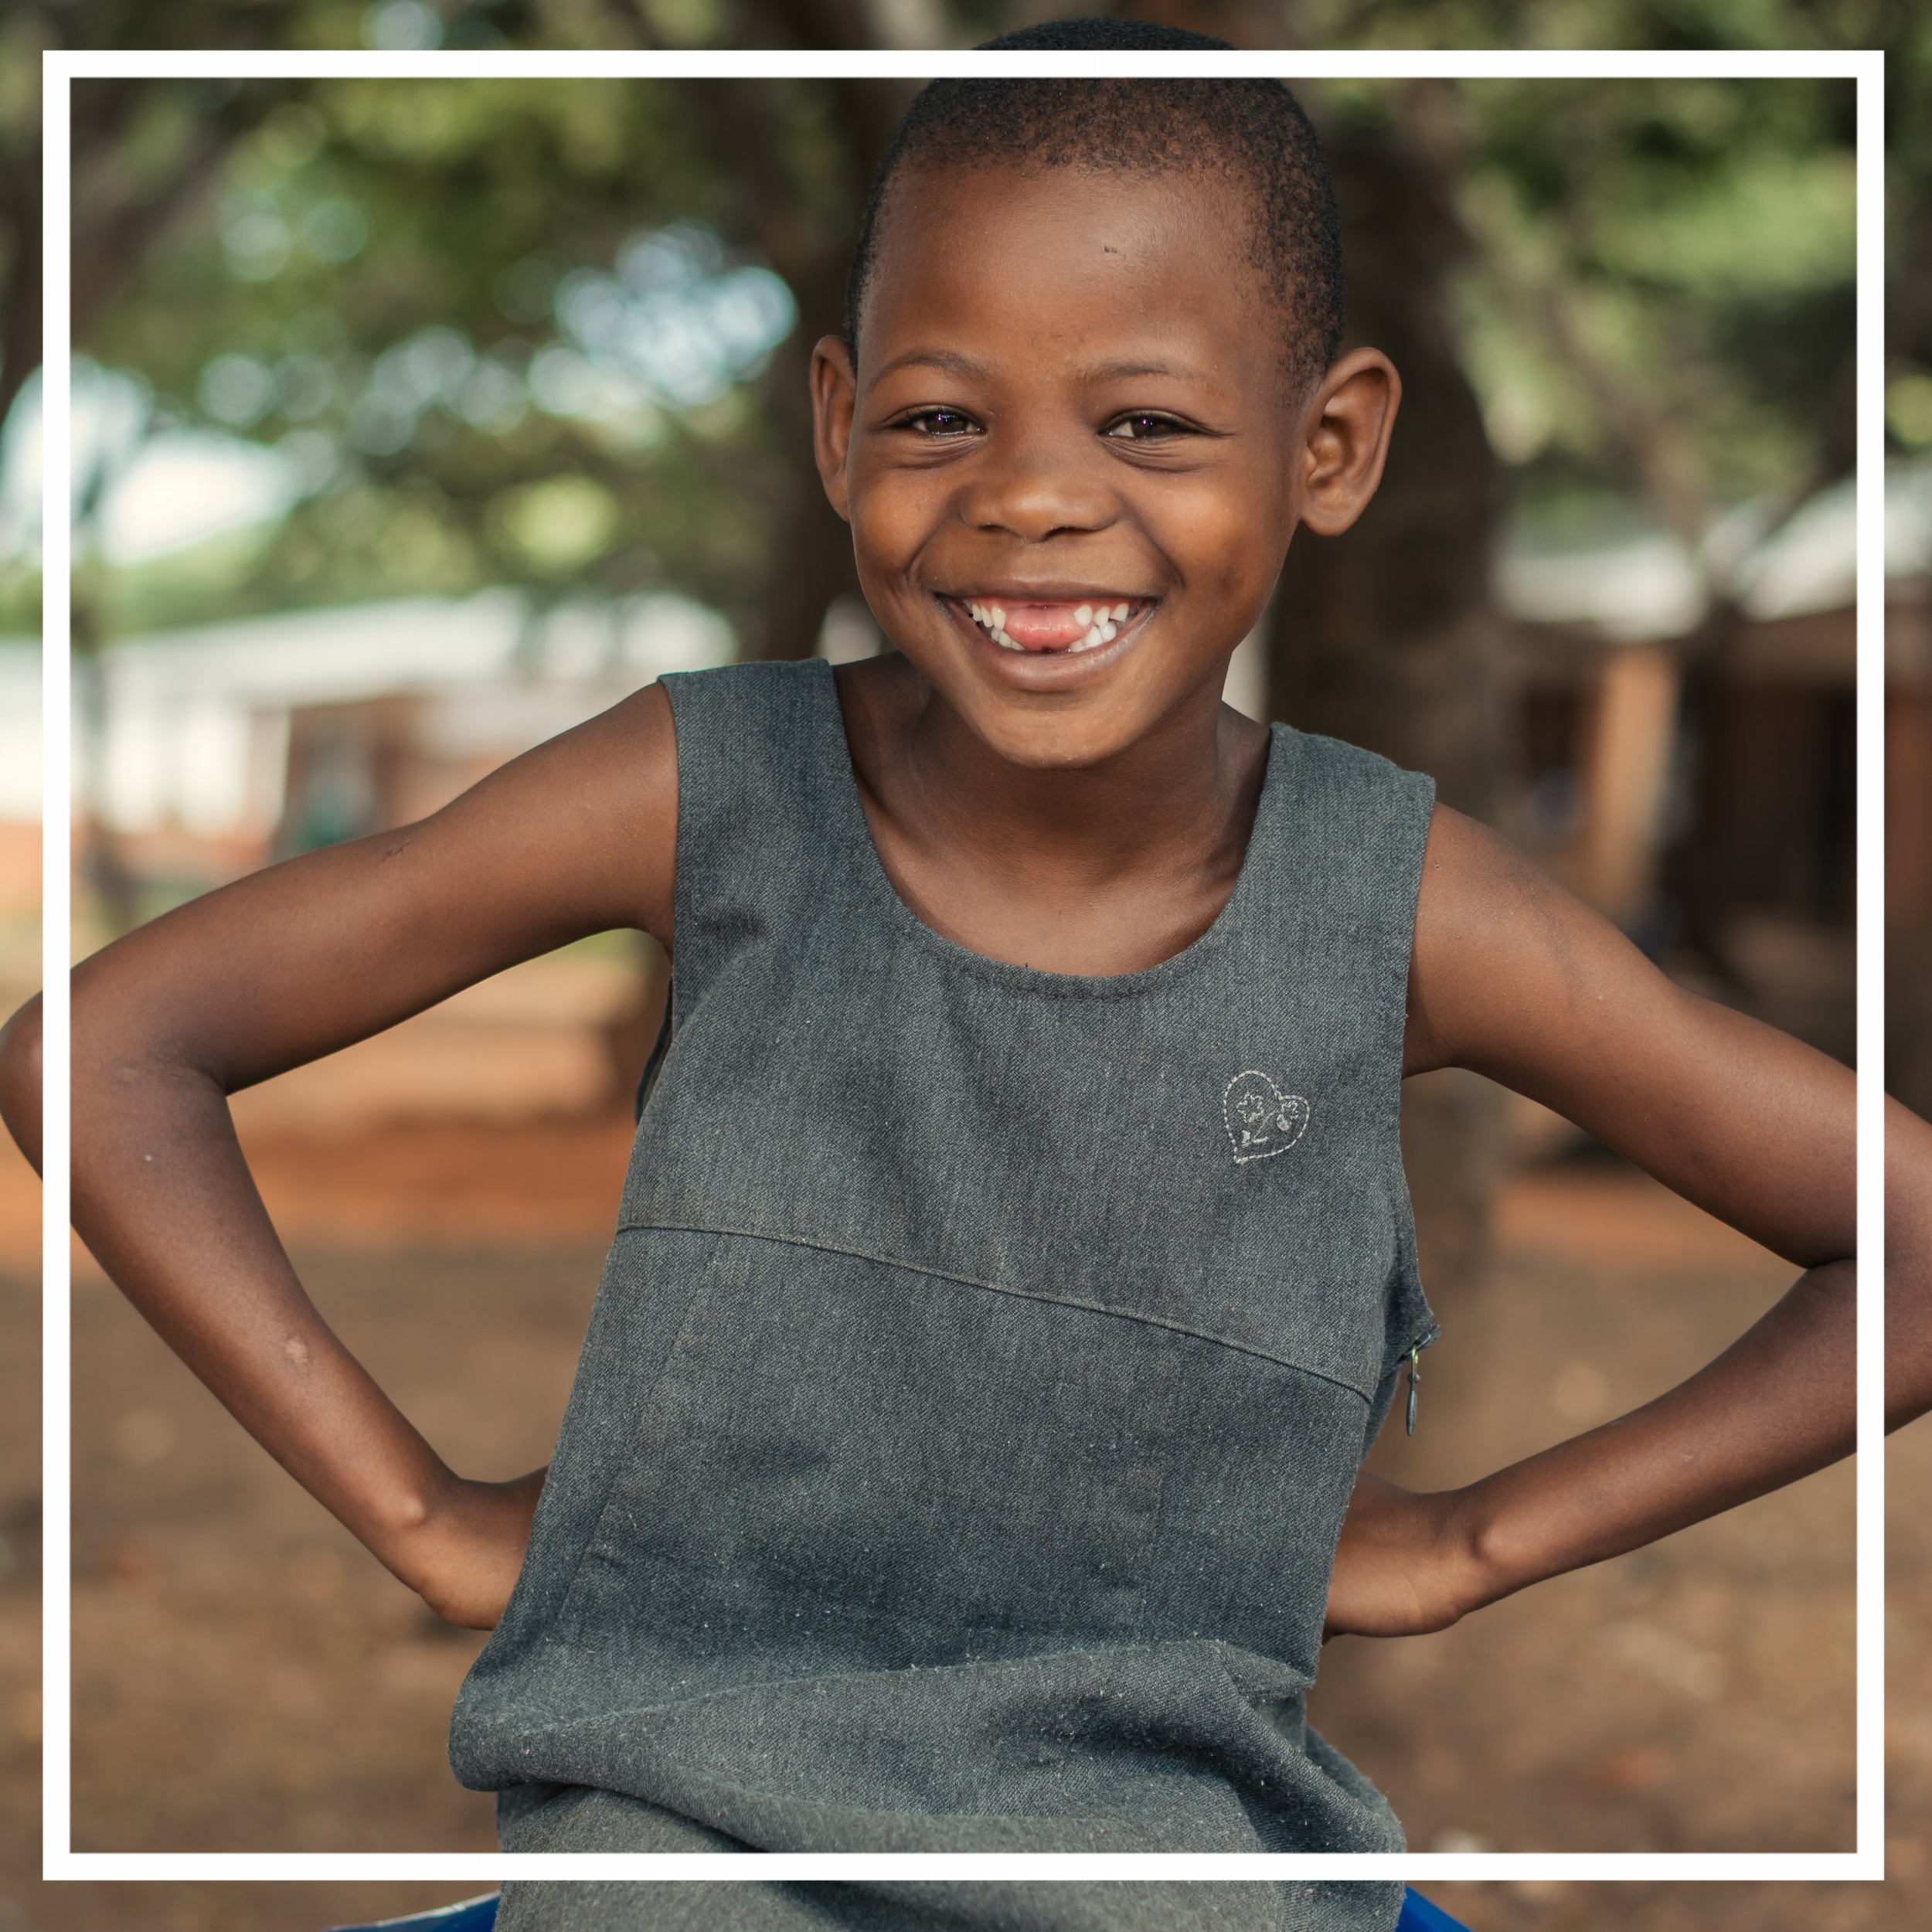 Join our community support efforts.  - Sponsor a child and change a life.